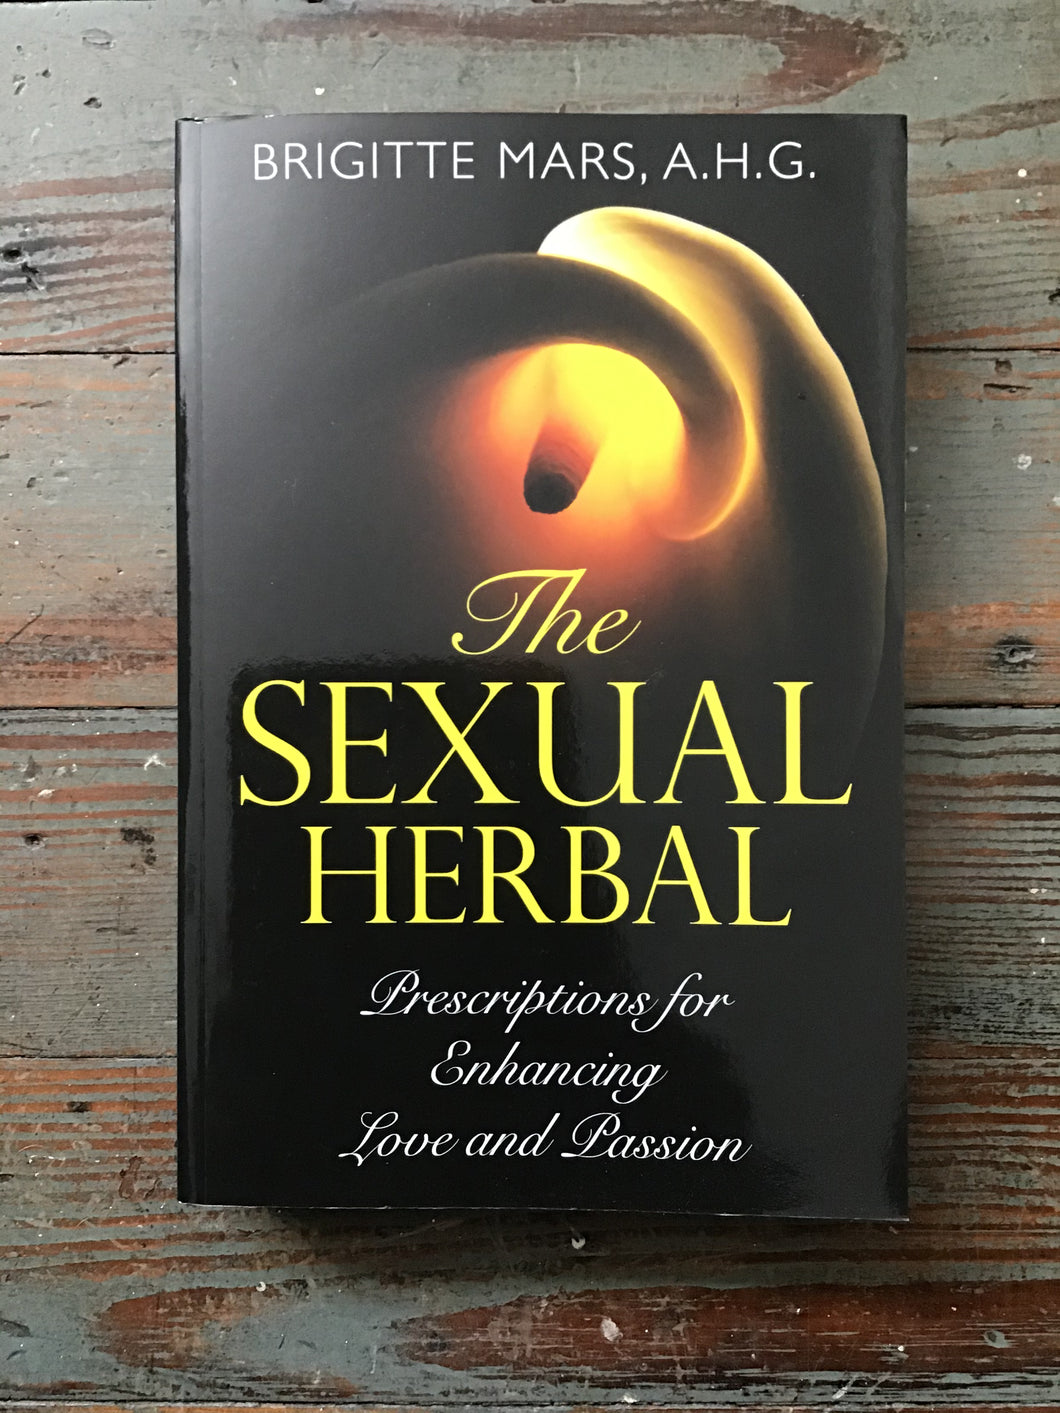 The Sexual Herbal: Prescriptions for Enhancing Love and Passion